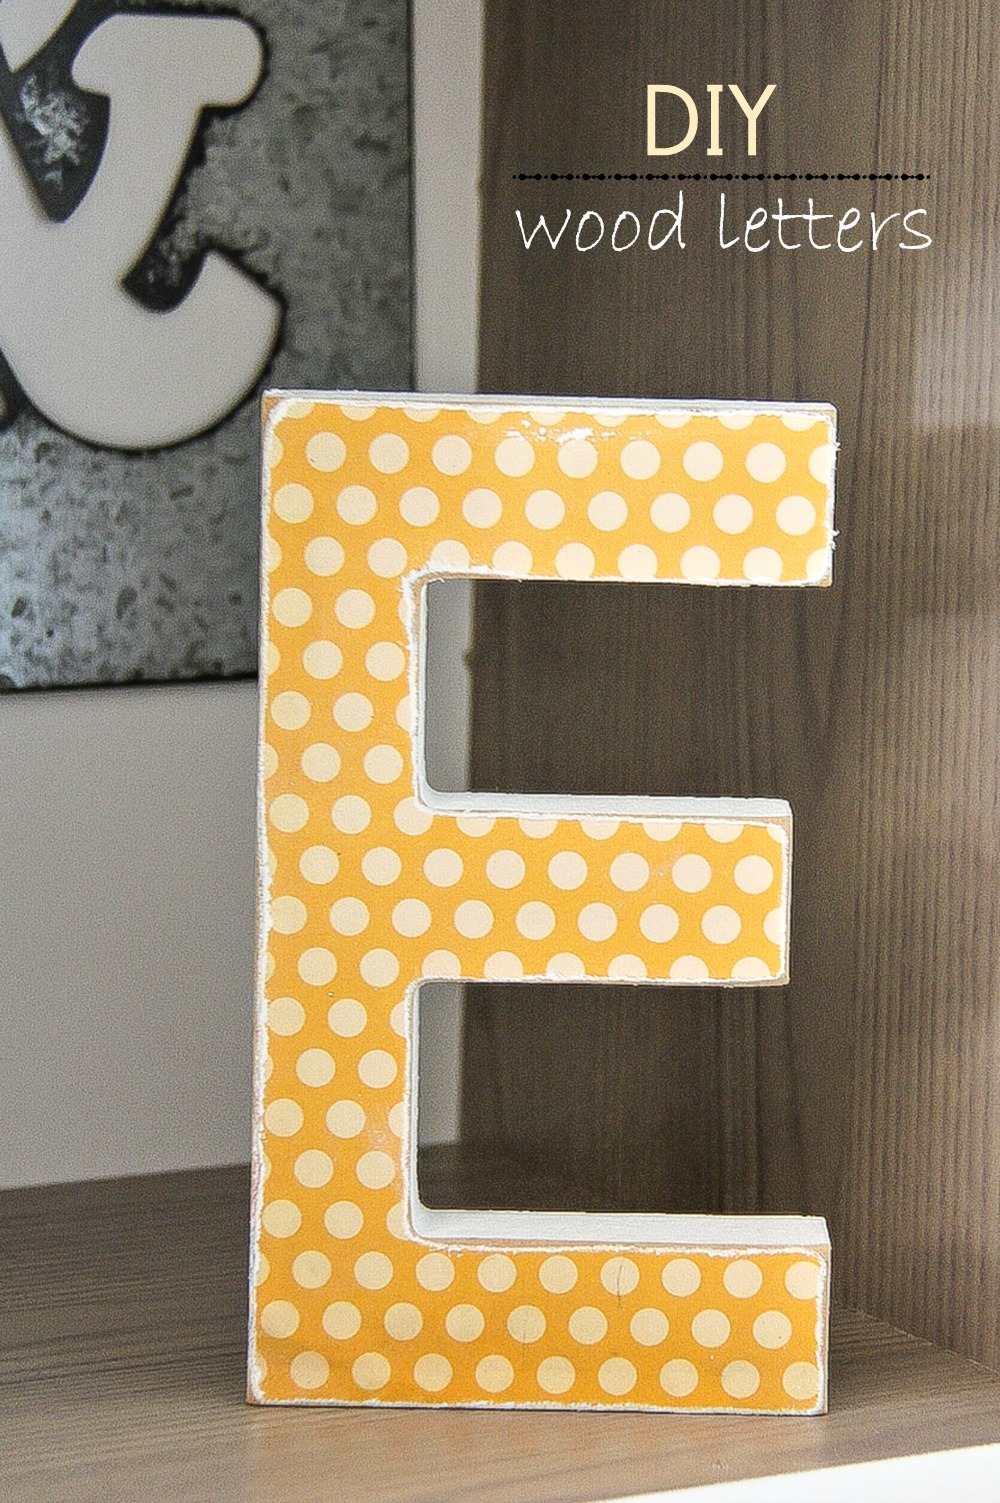 Diy decorative wood letters for Making wooden letters